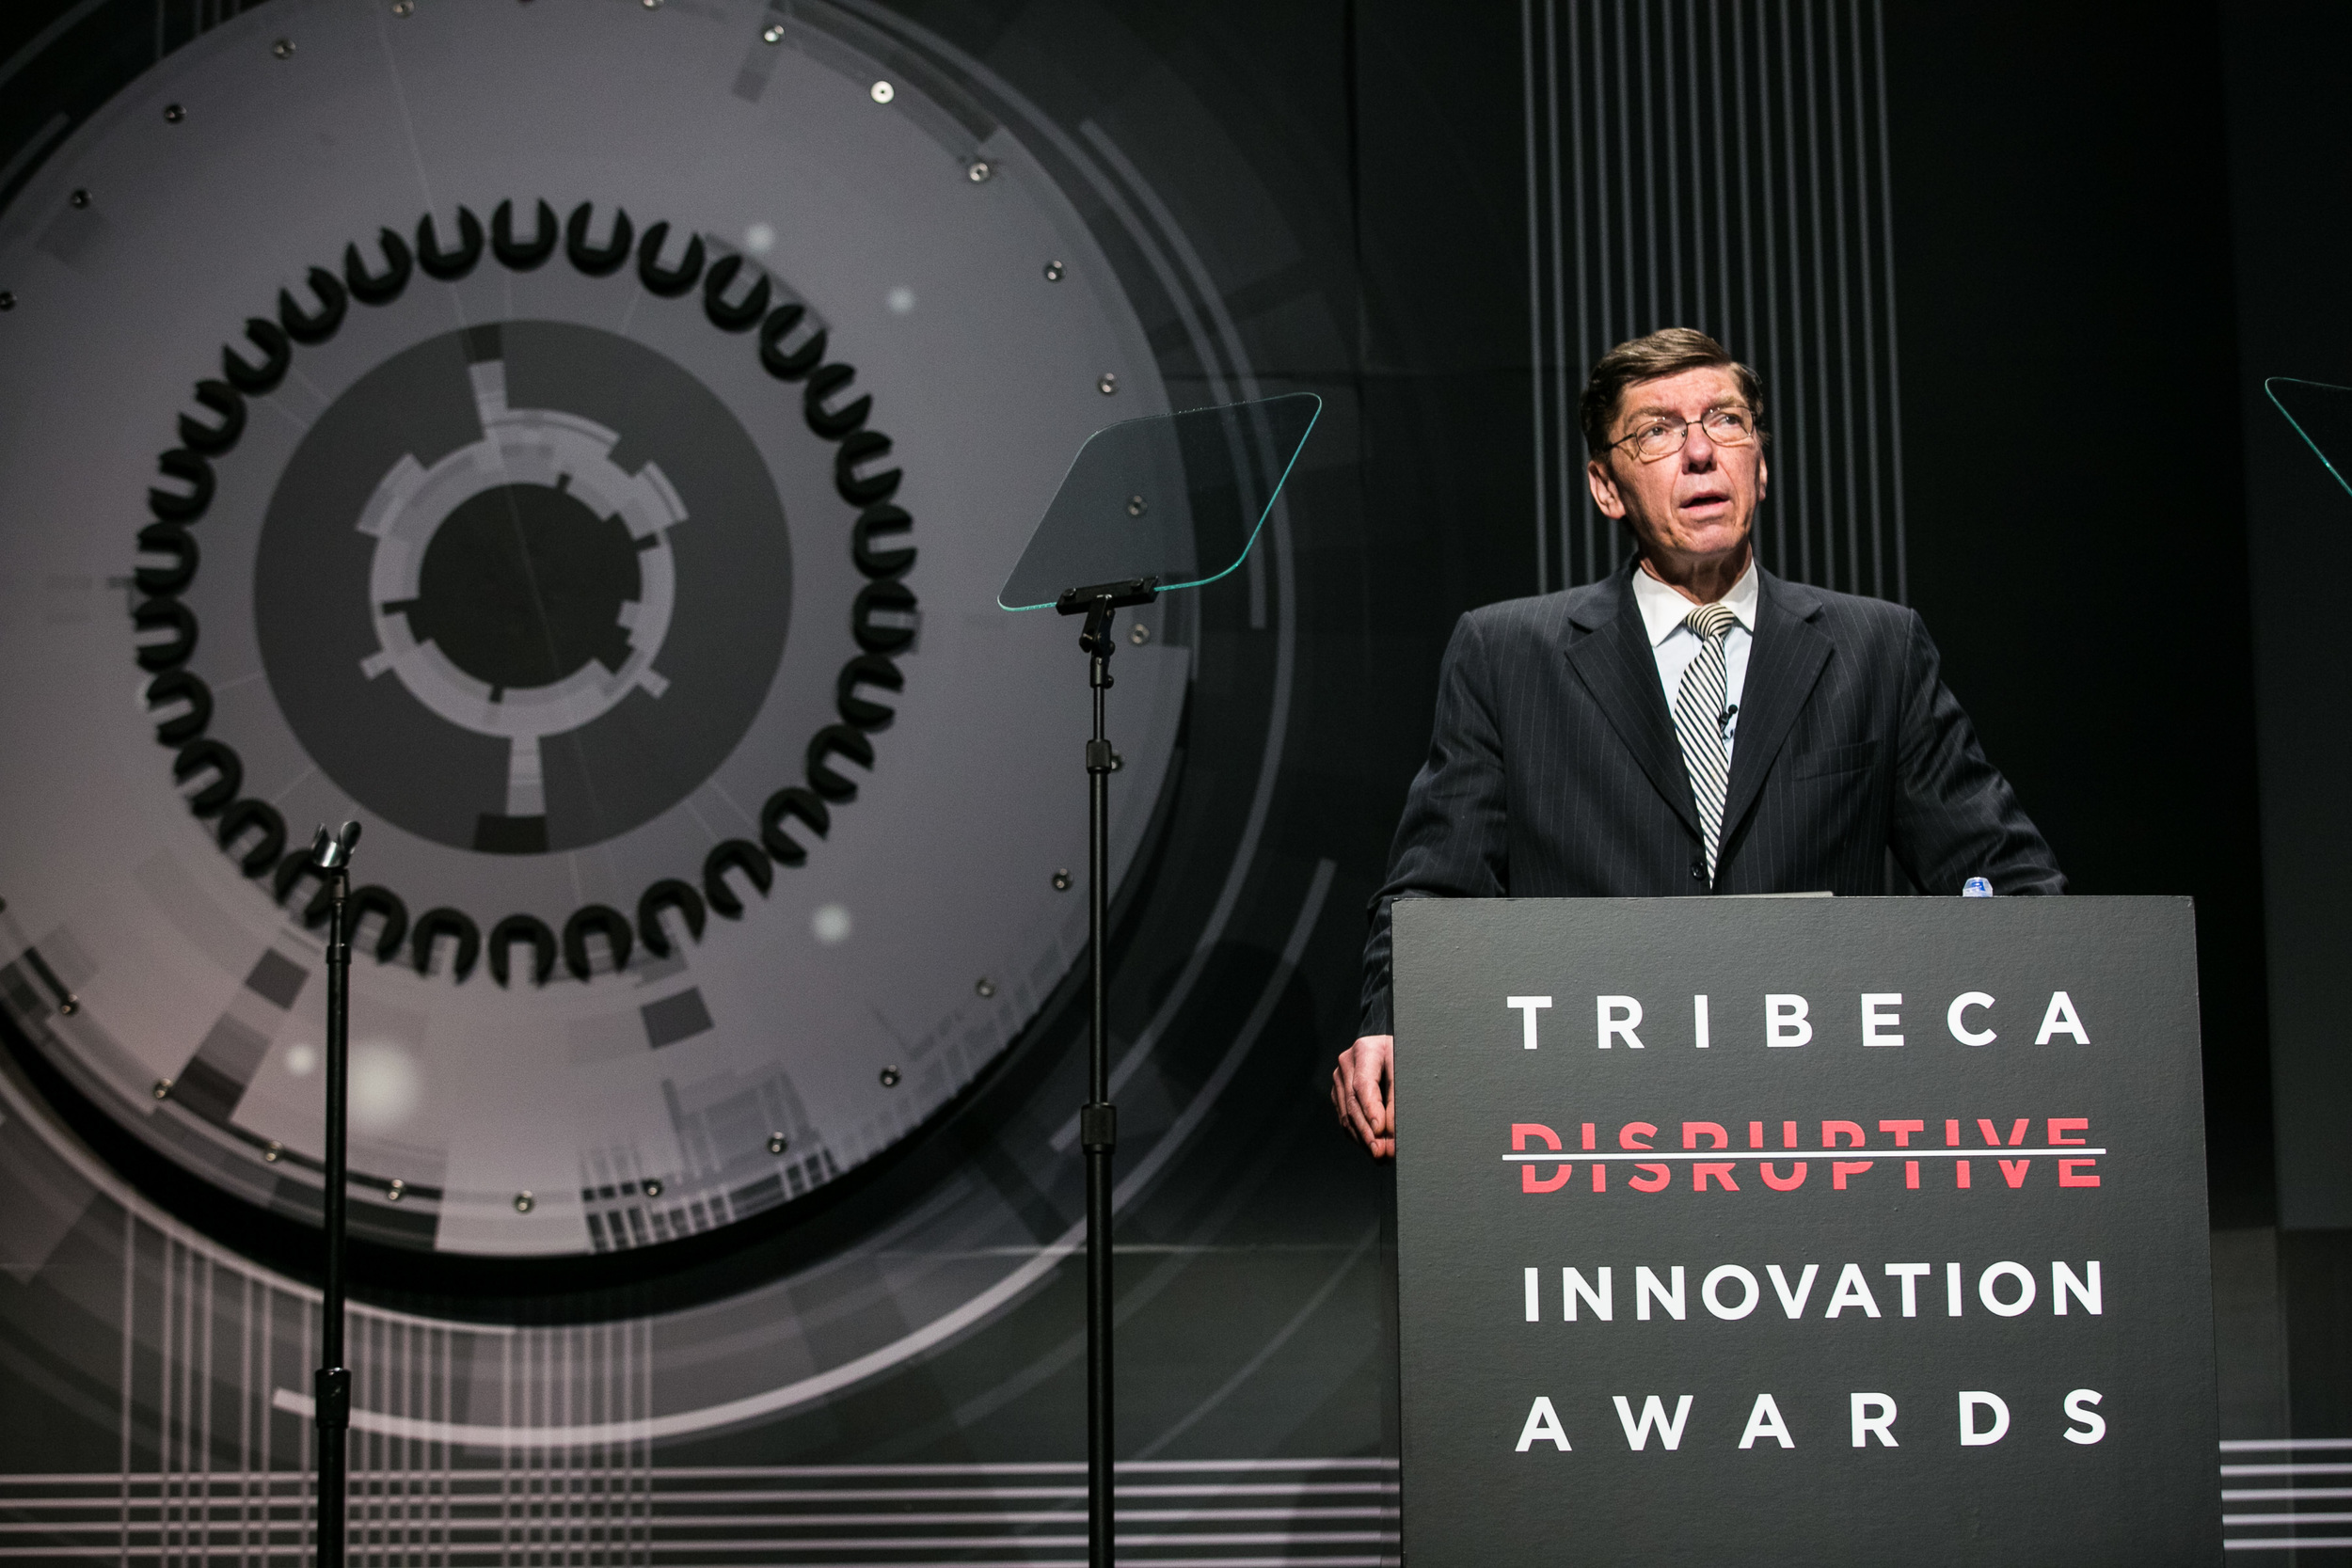 20150424-Tribeca Disruptive Innovation Awards-1339.jpg